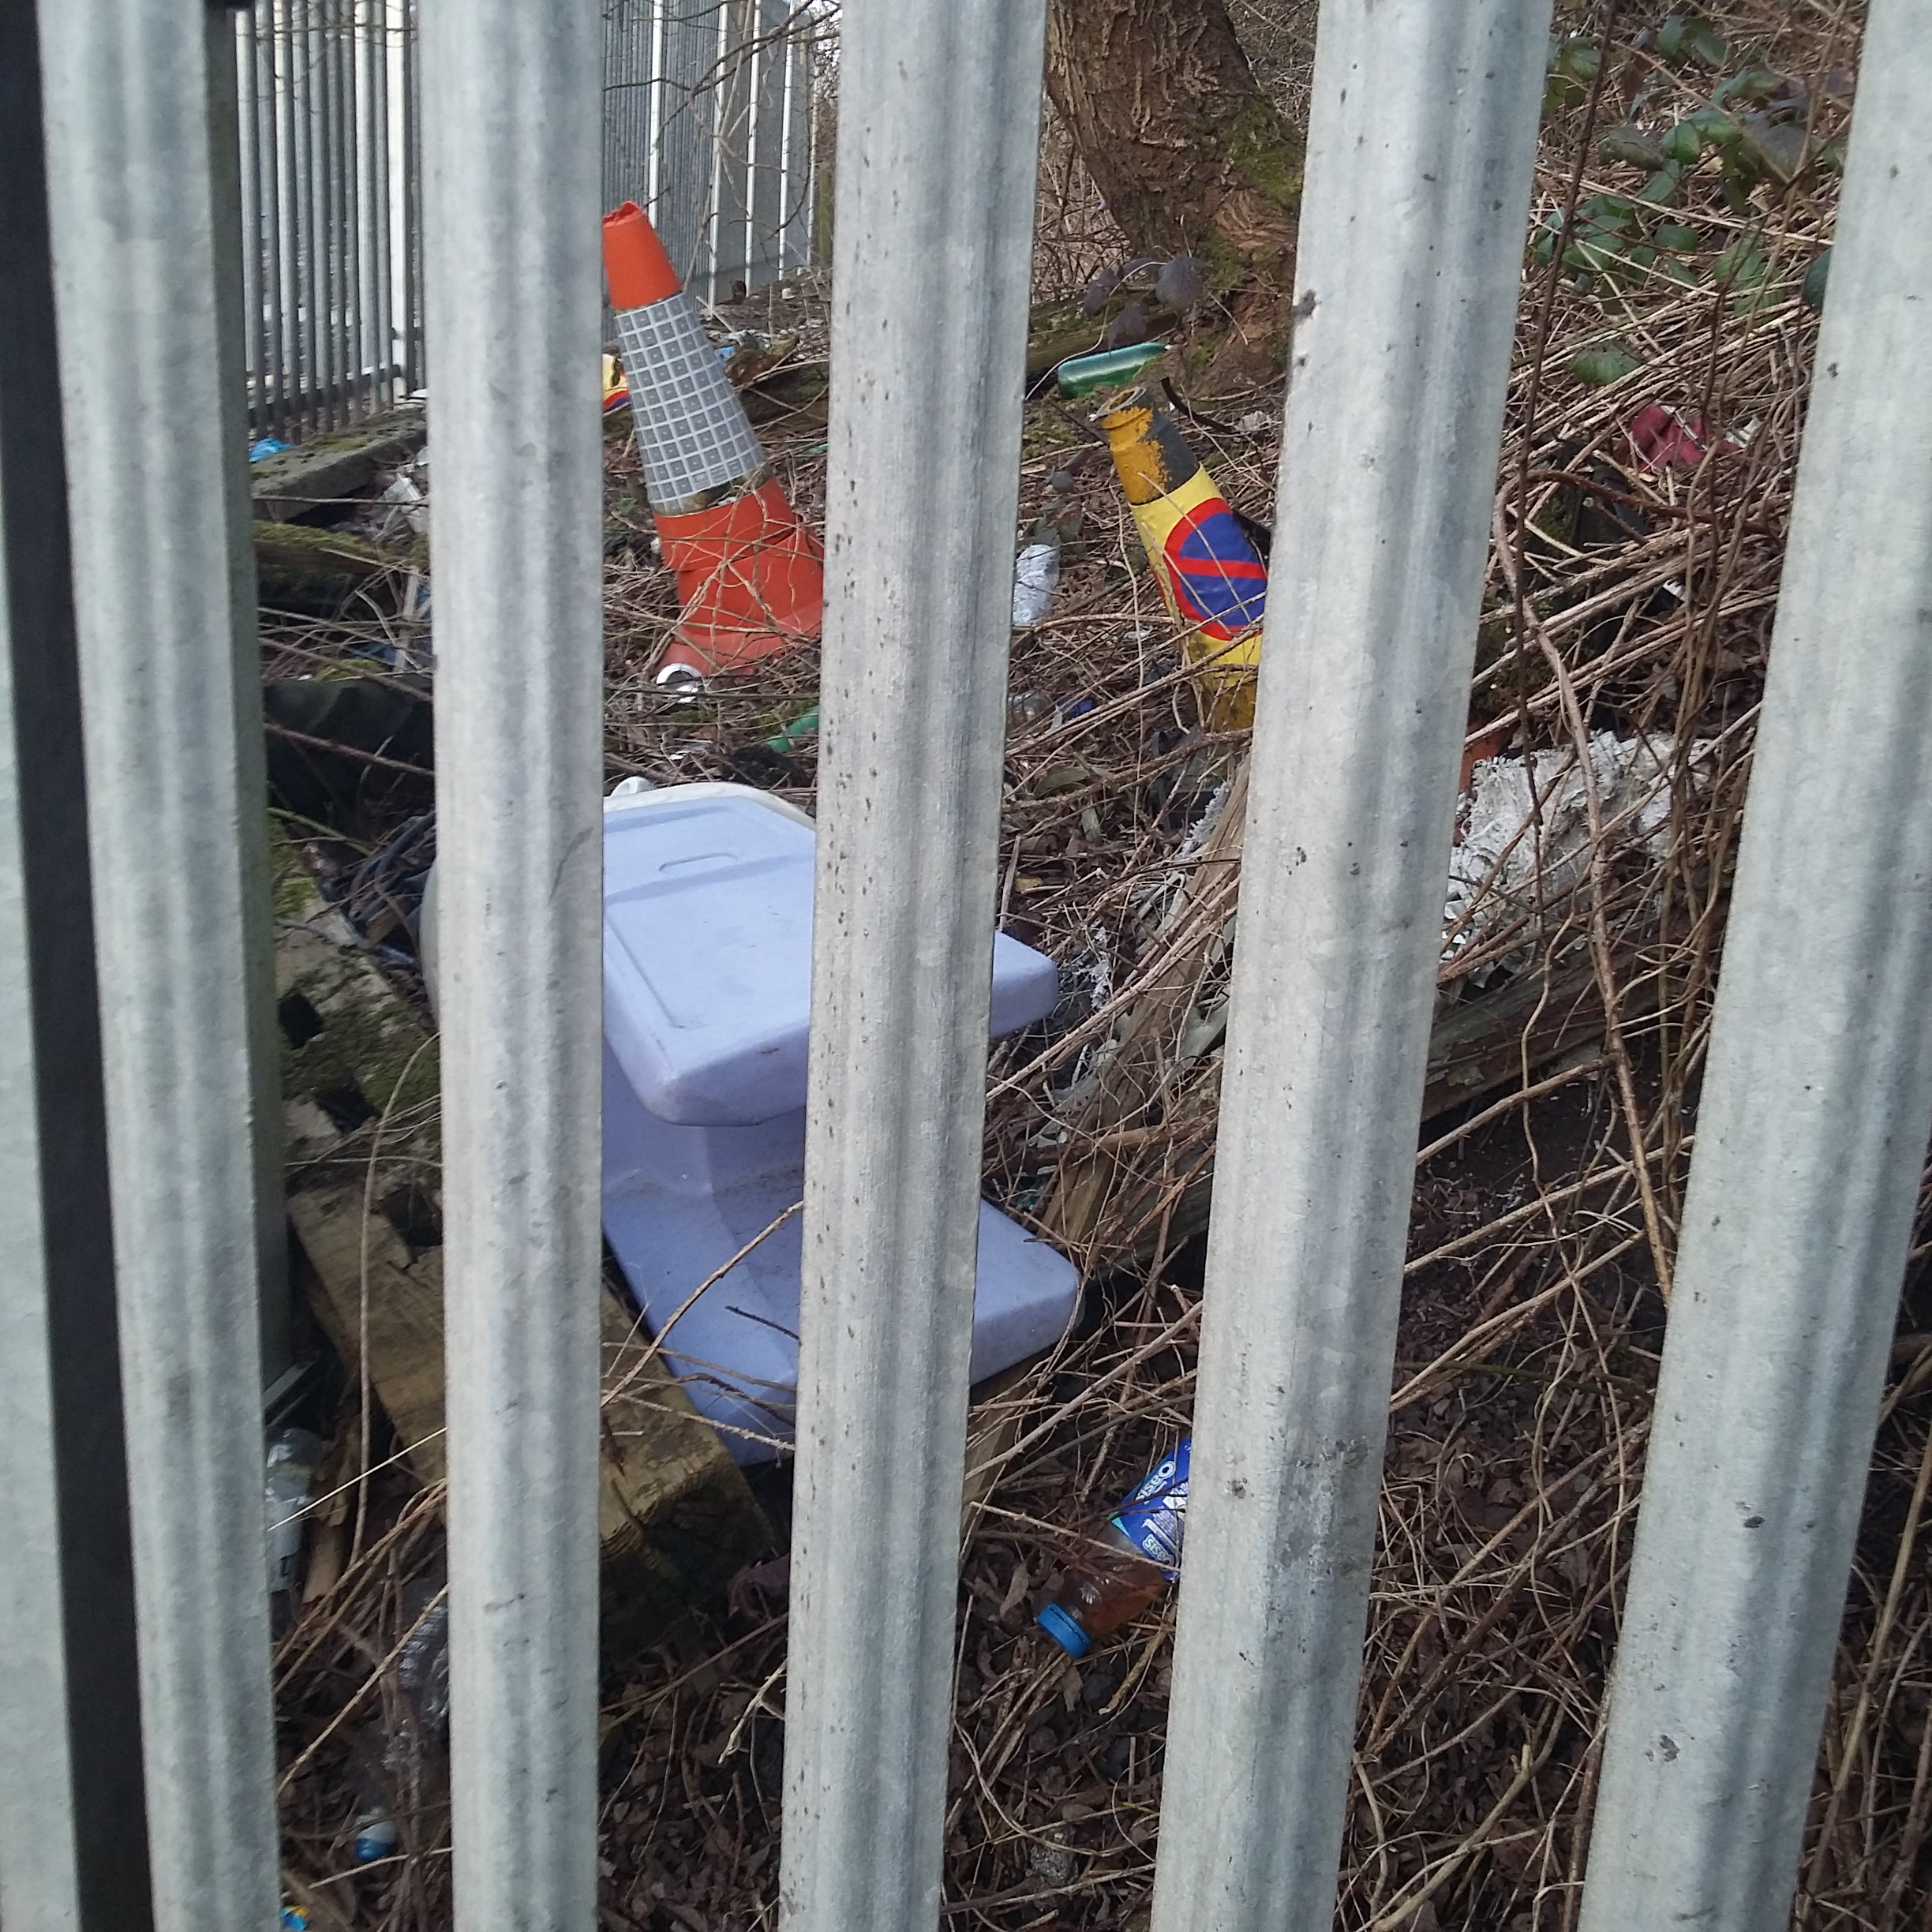 Plea to end fly tipping blight